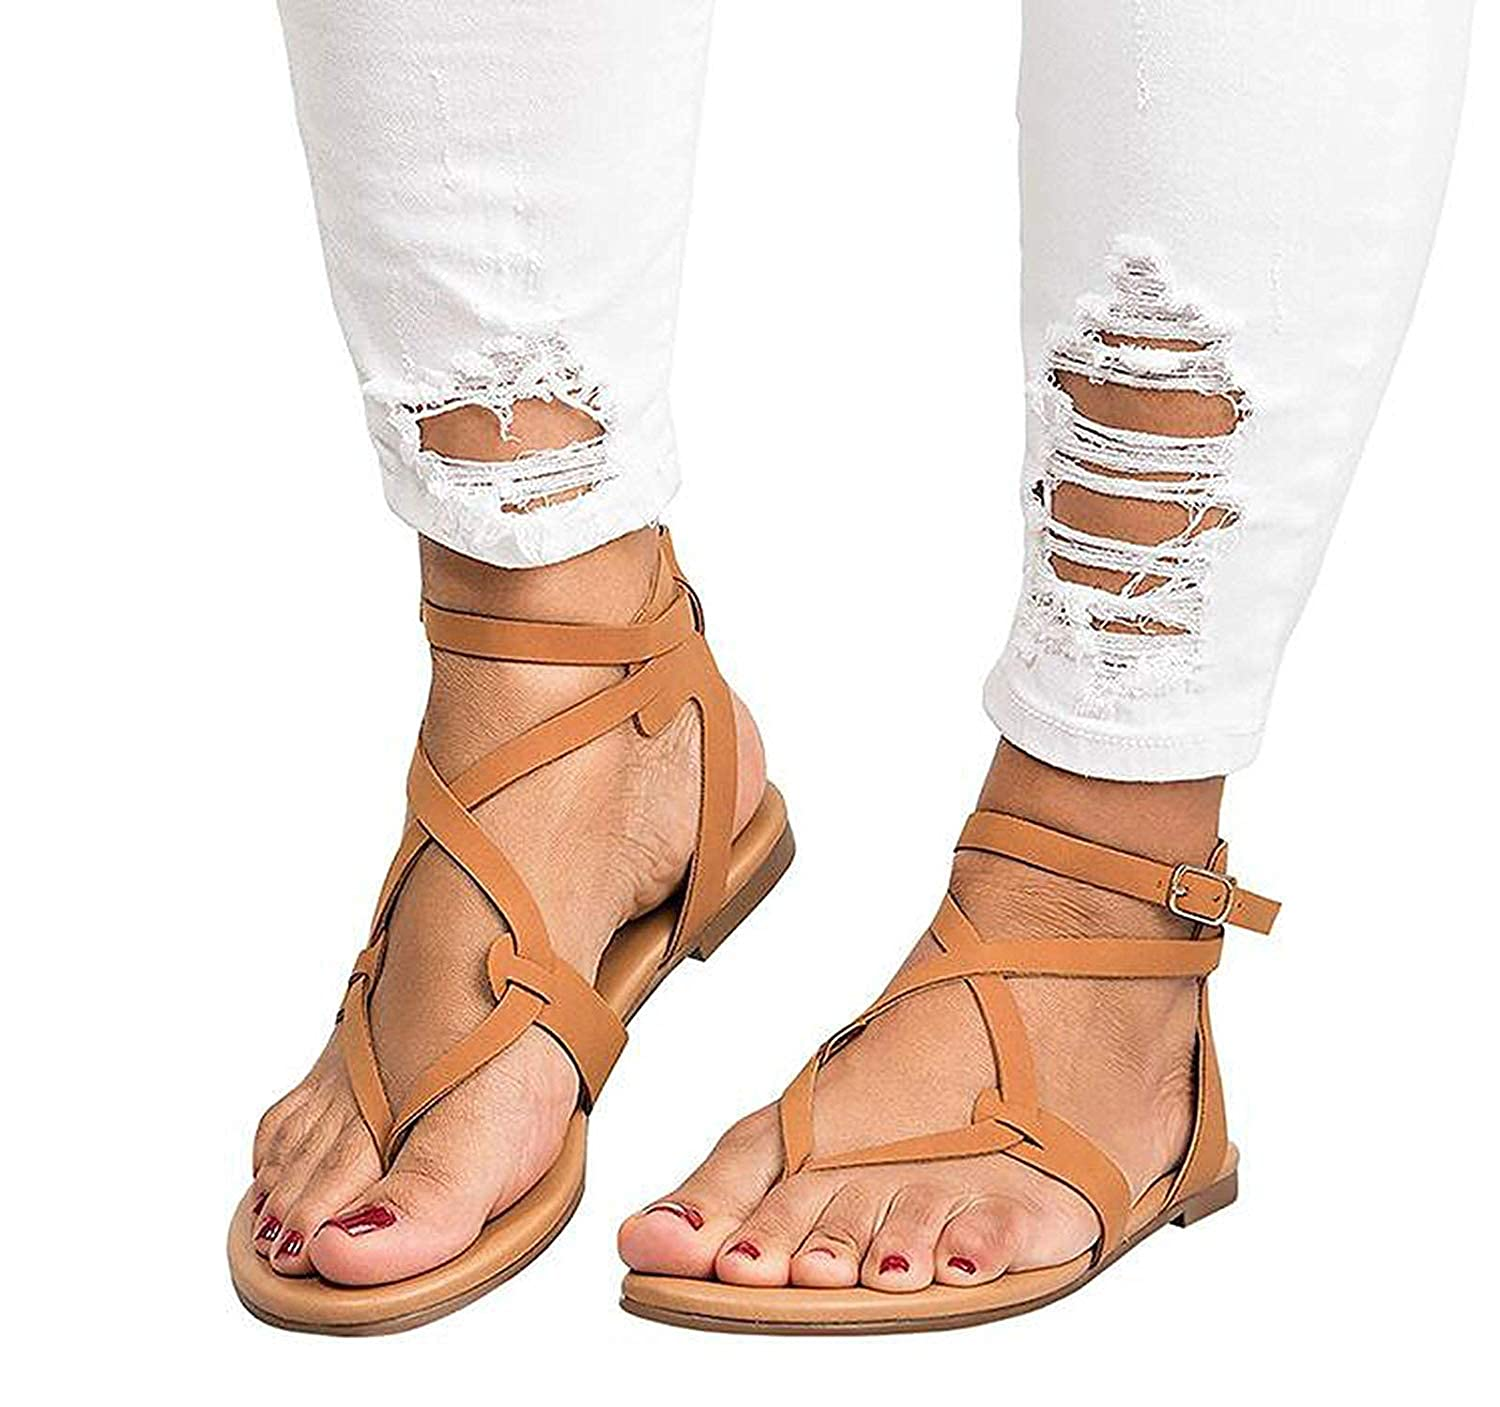 560662989 Amazon.com | 2019 Shoes Woman Bandage Summer Female Flat Sandals Casual Low  Heels Ankle Strap Women Sandals | Flats